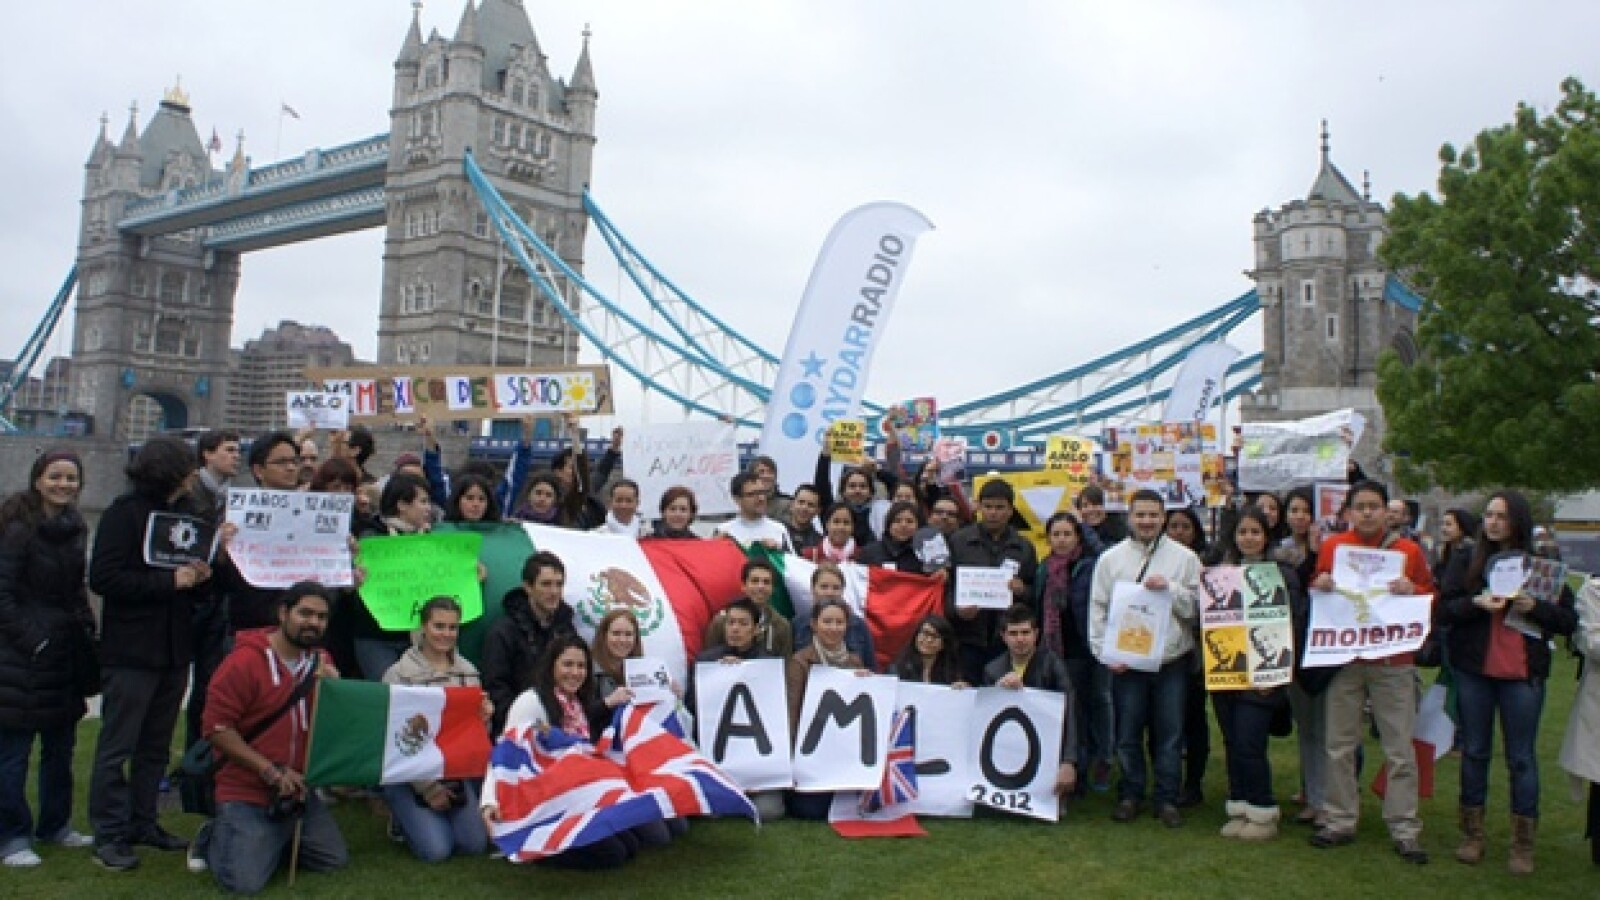 marcha pro amlo londres